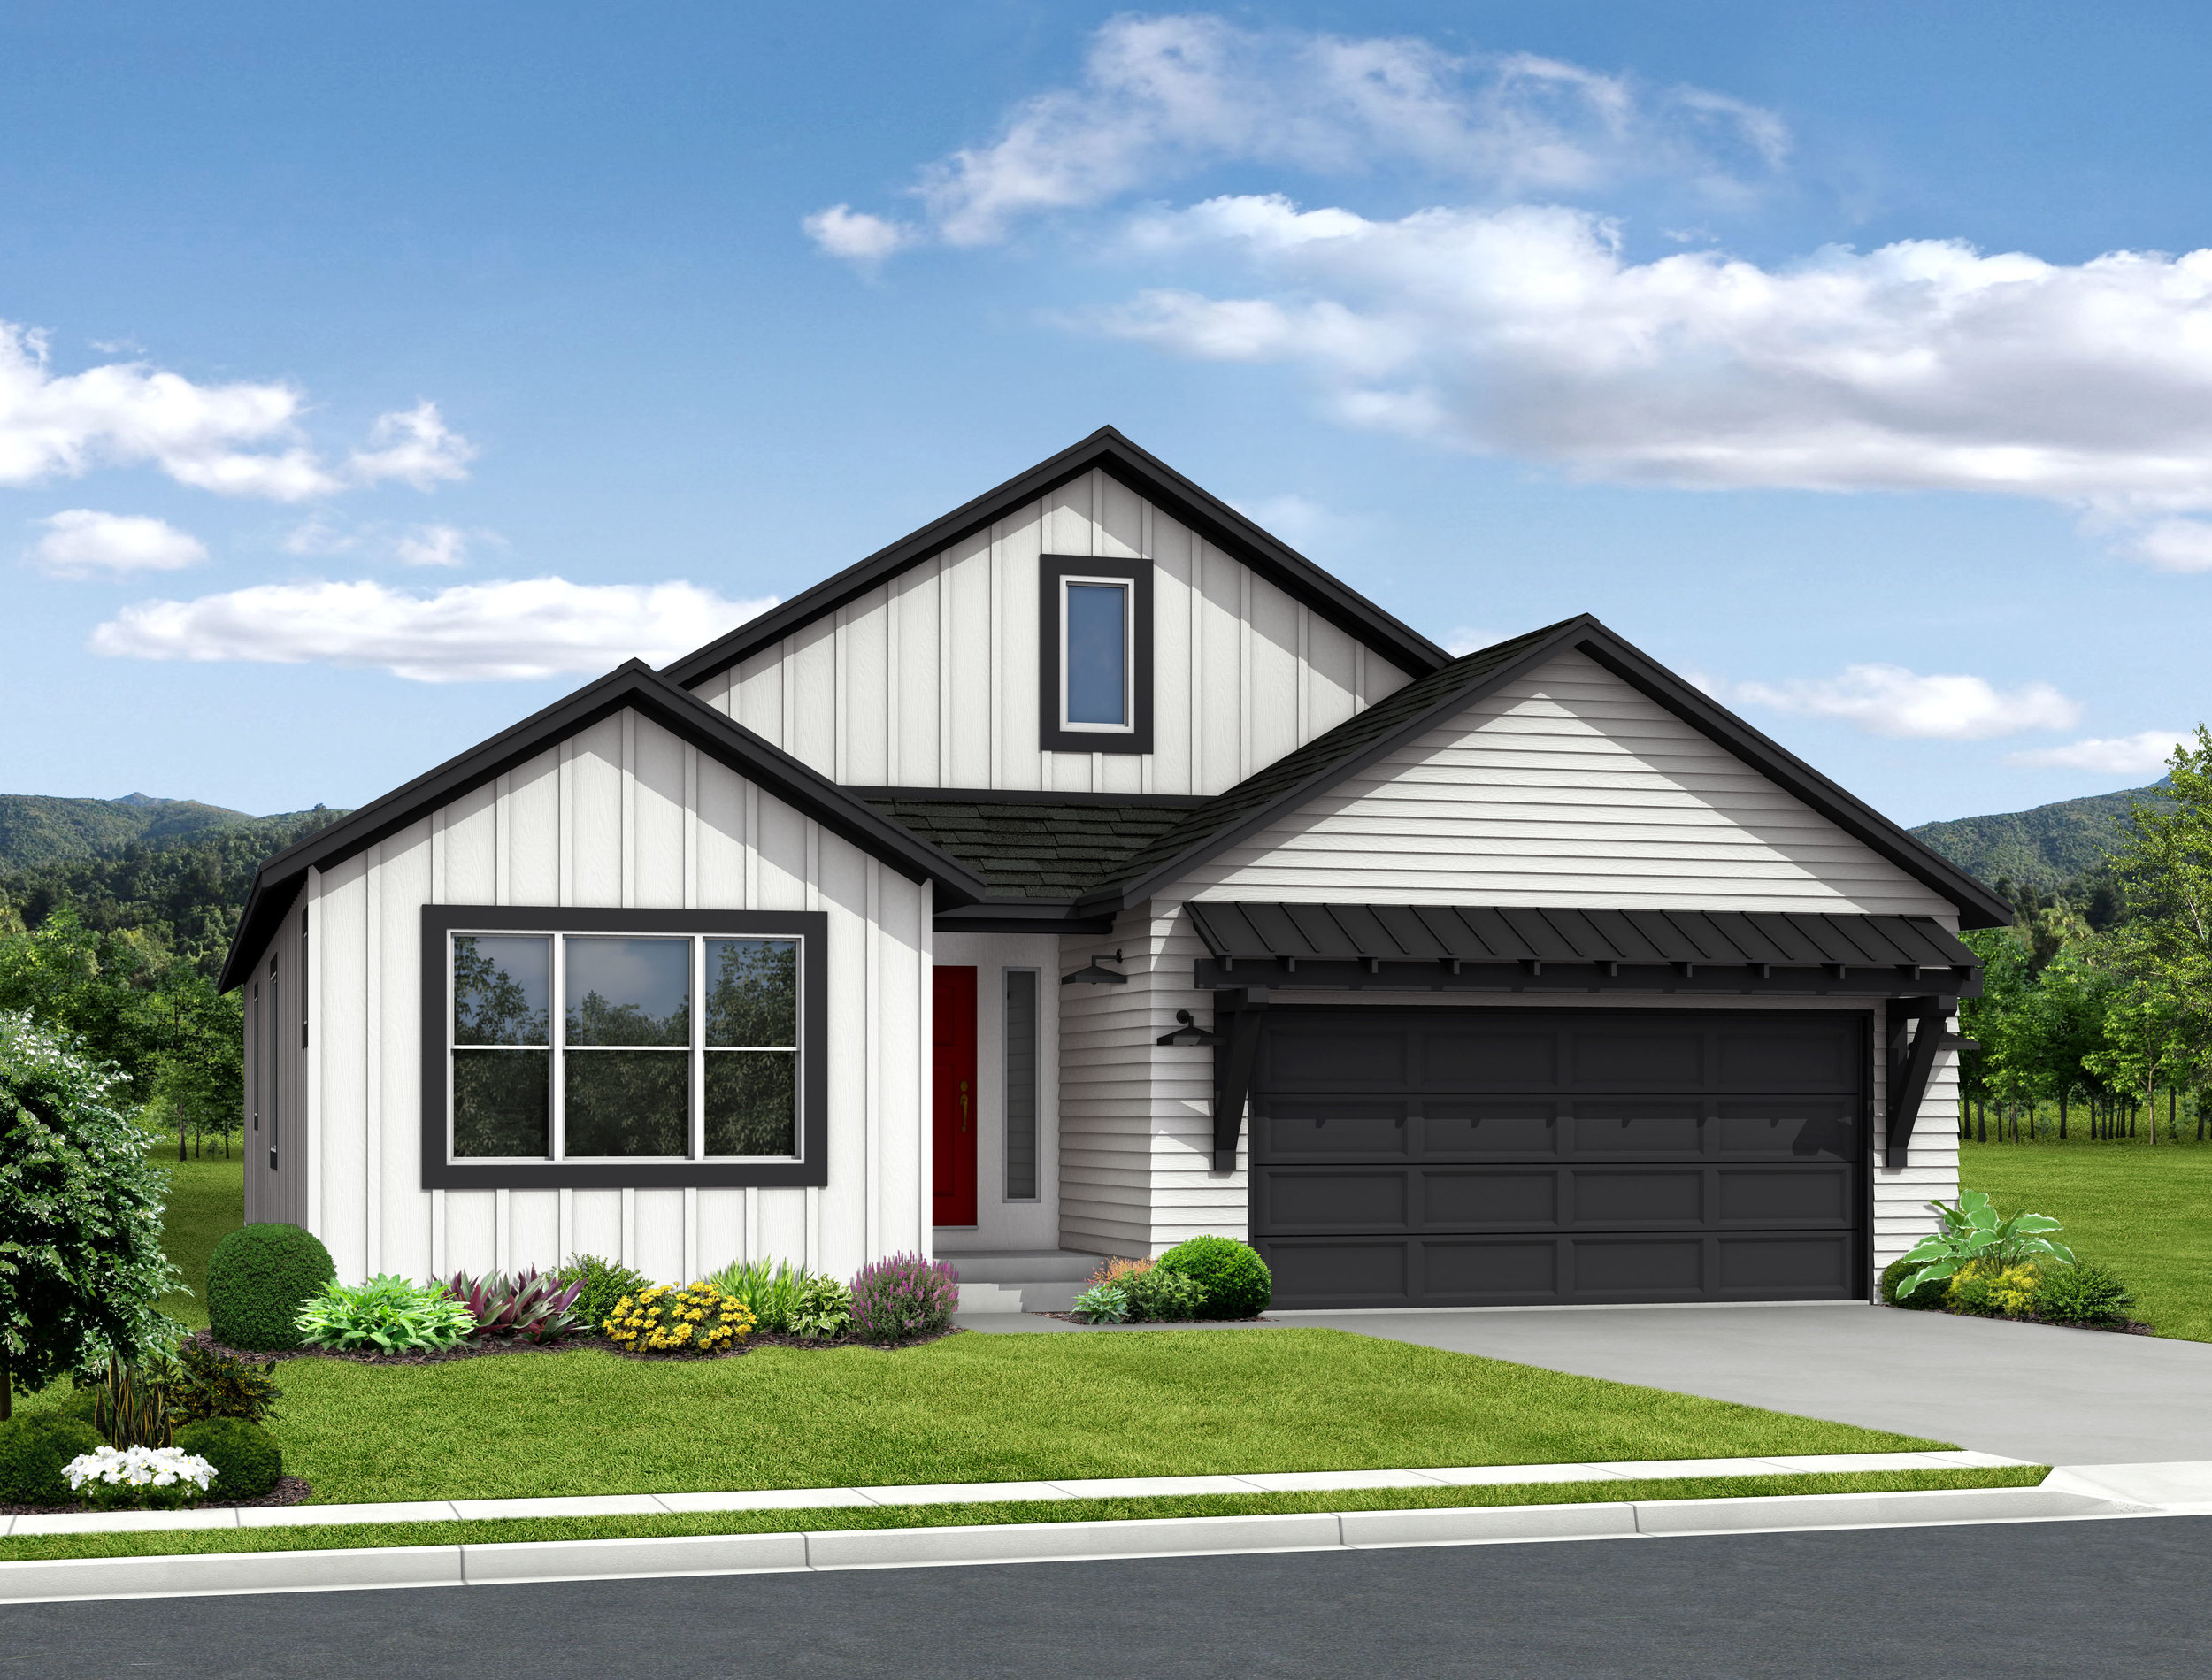 Keller Homes-Cumbre Vista-Farmhouse Series_1706_S.jpg